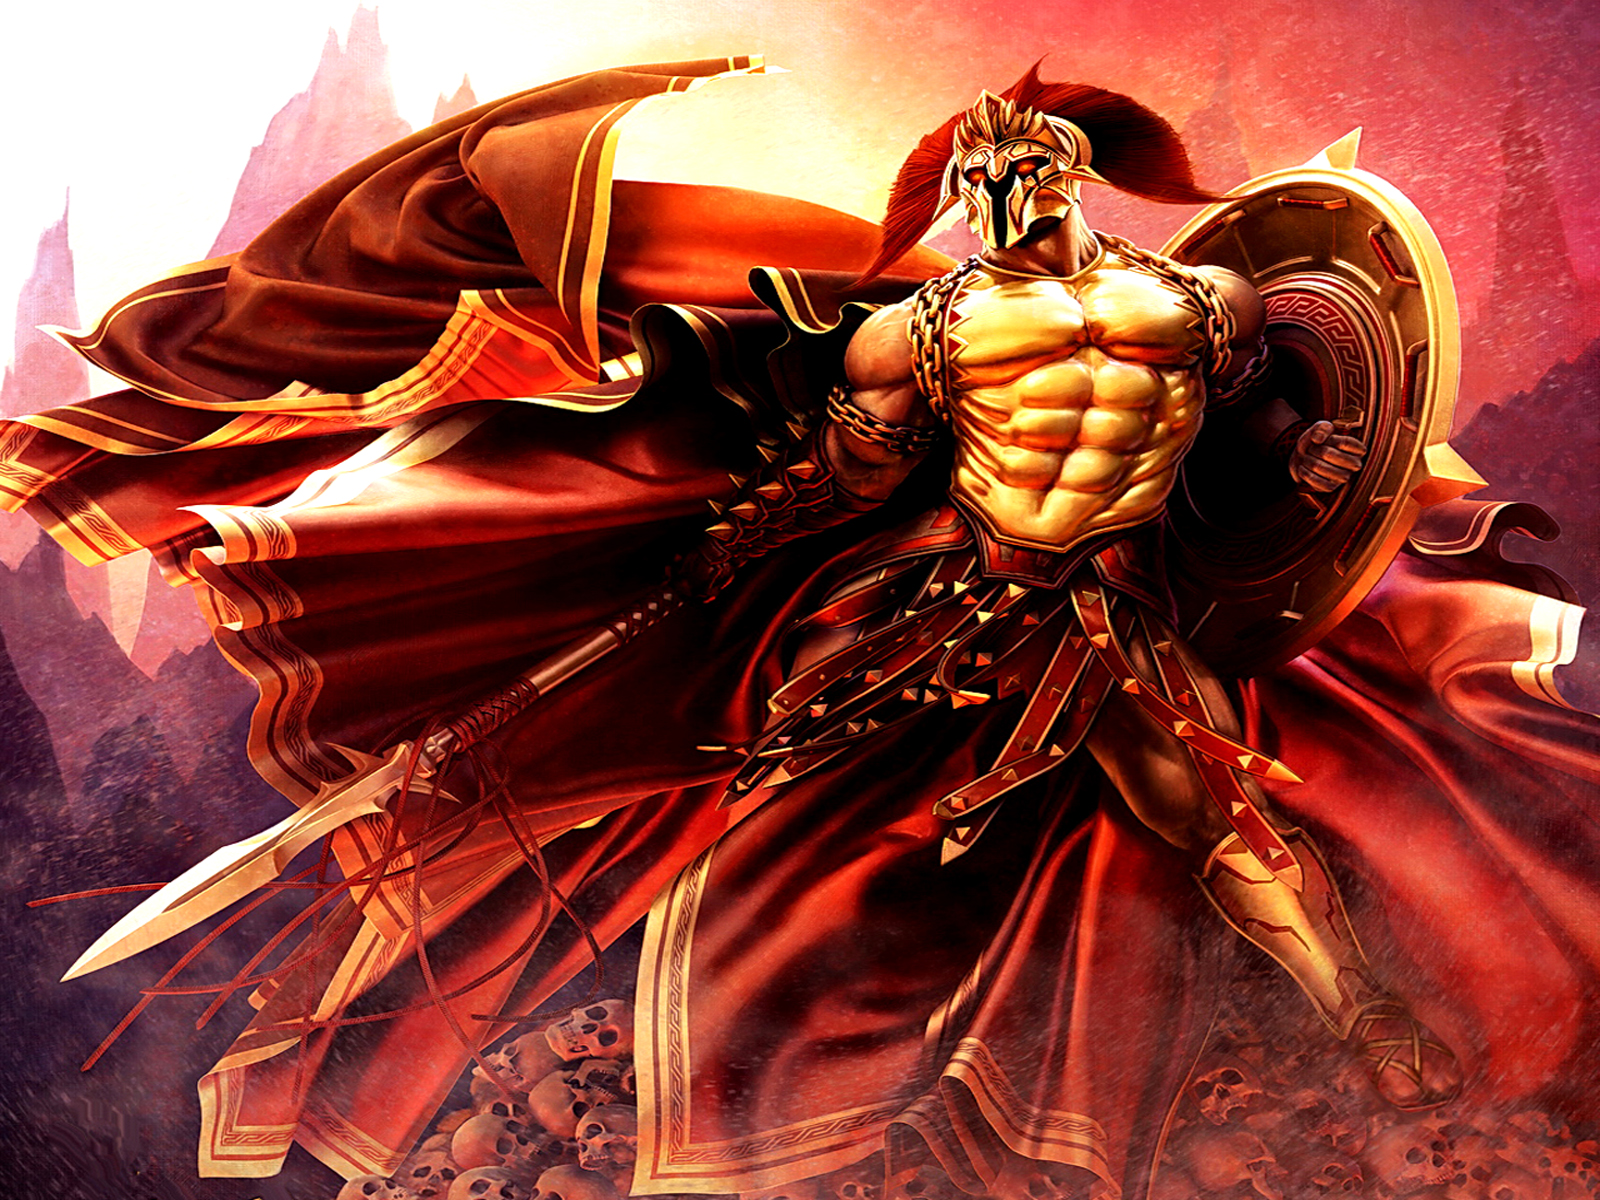 War gods testament wallpaper and background image 1600x1200 id 115457 wallpaper abyss - Ares god of war wallpaper ...